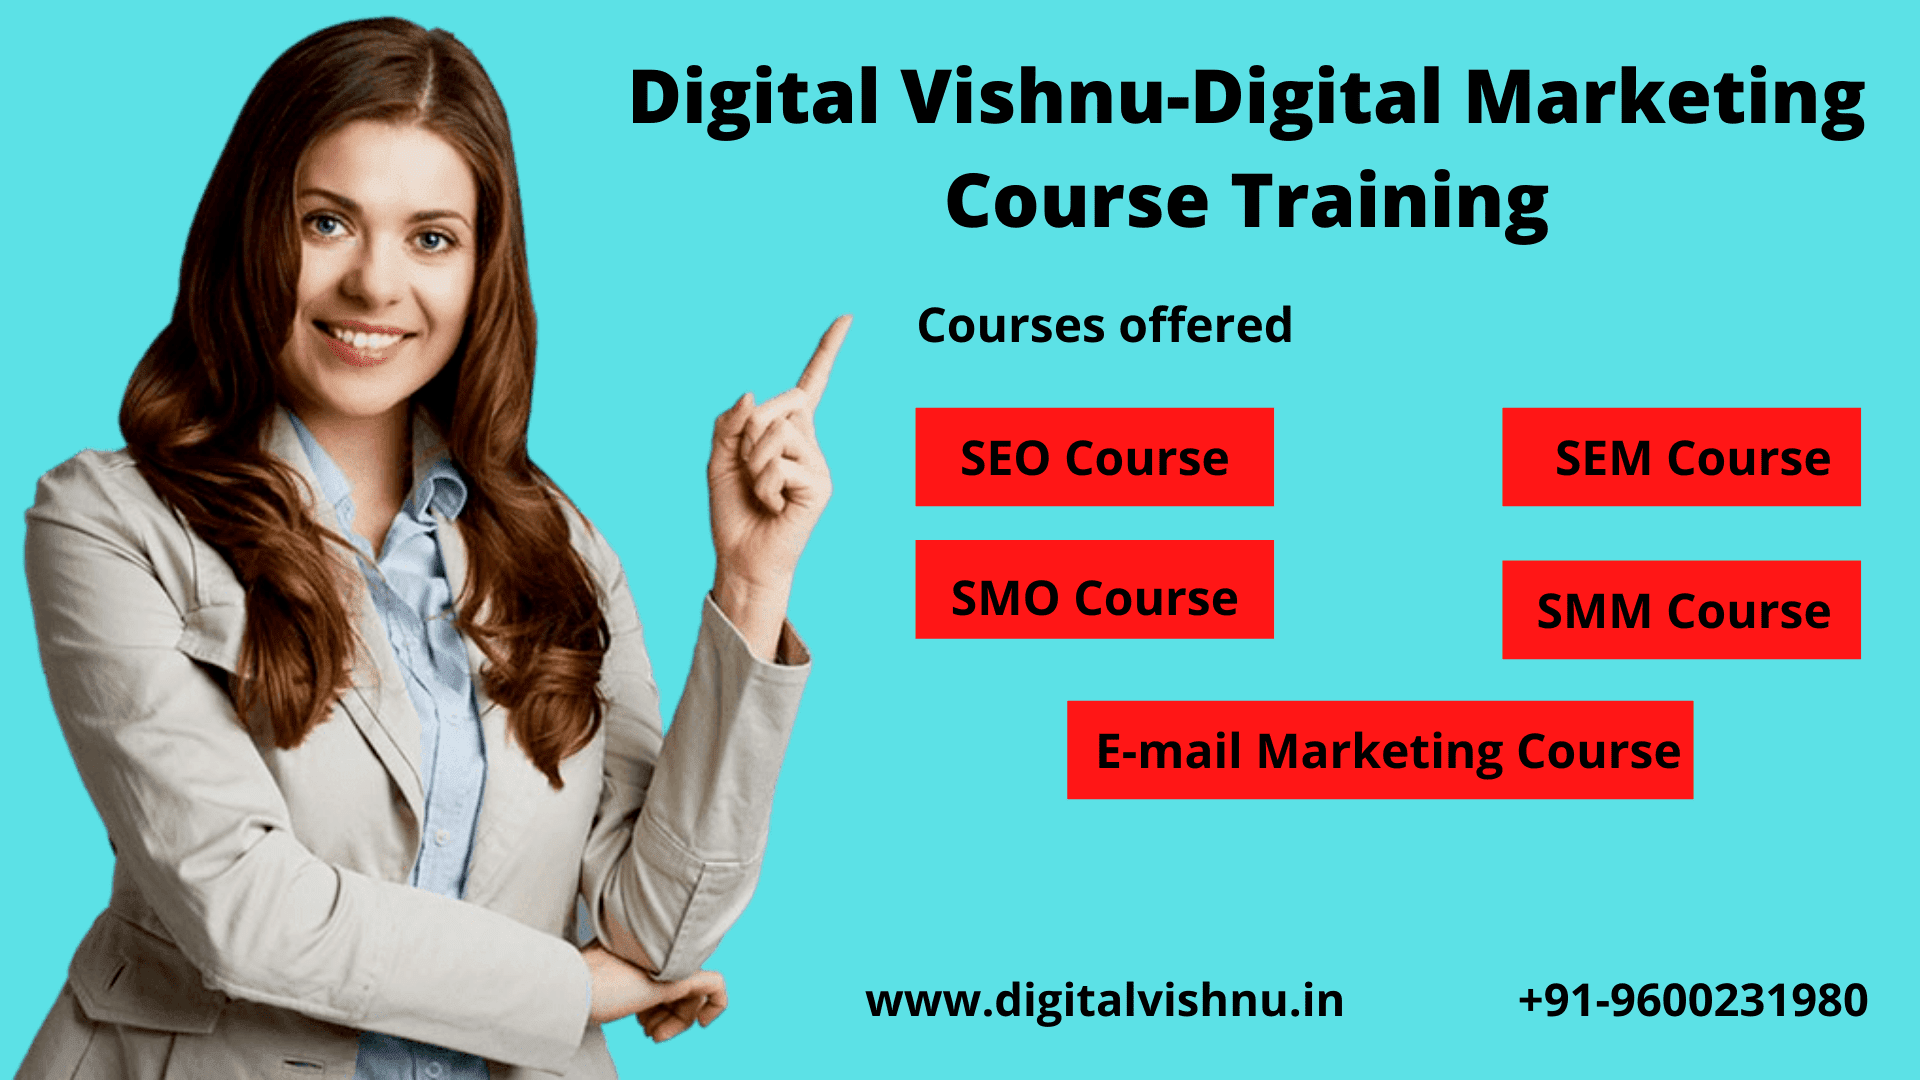 Digital Vishnu - Digital Marketing Course